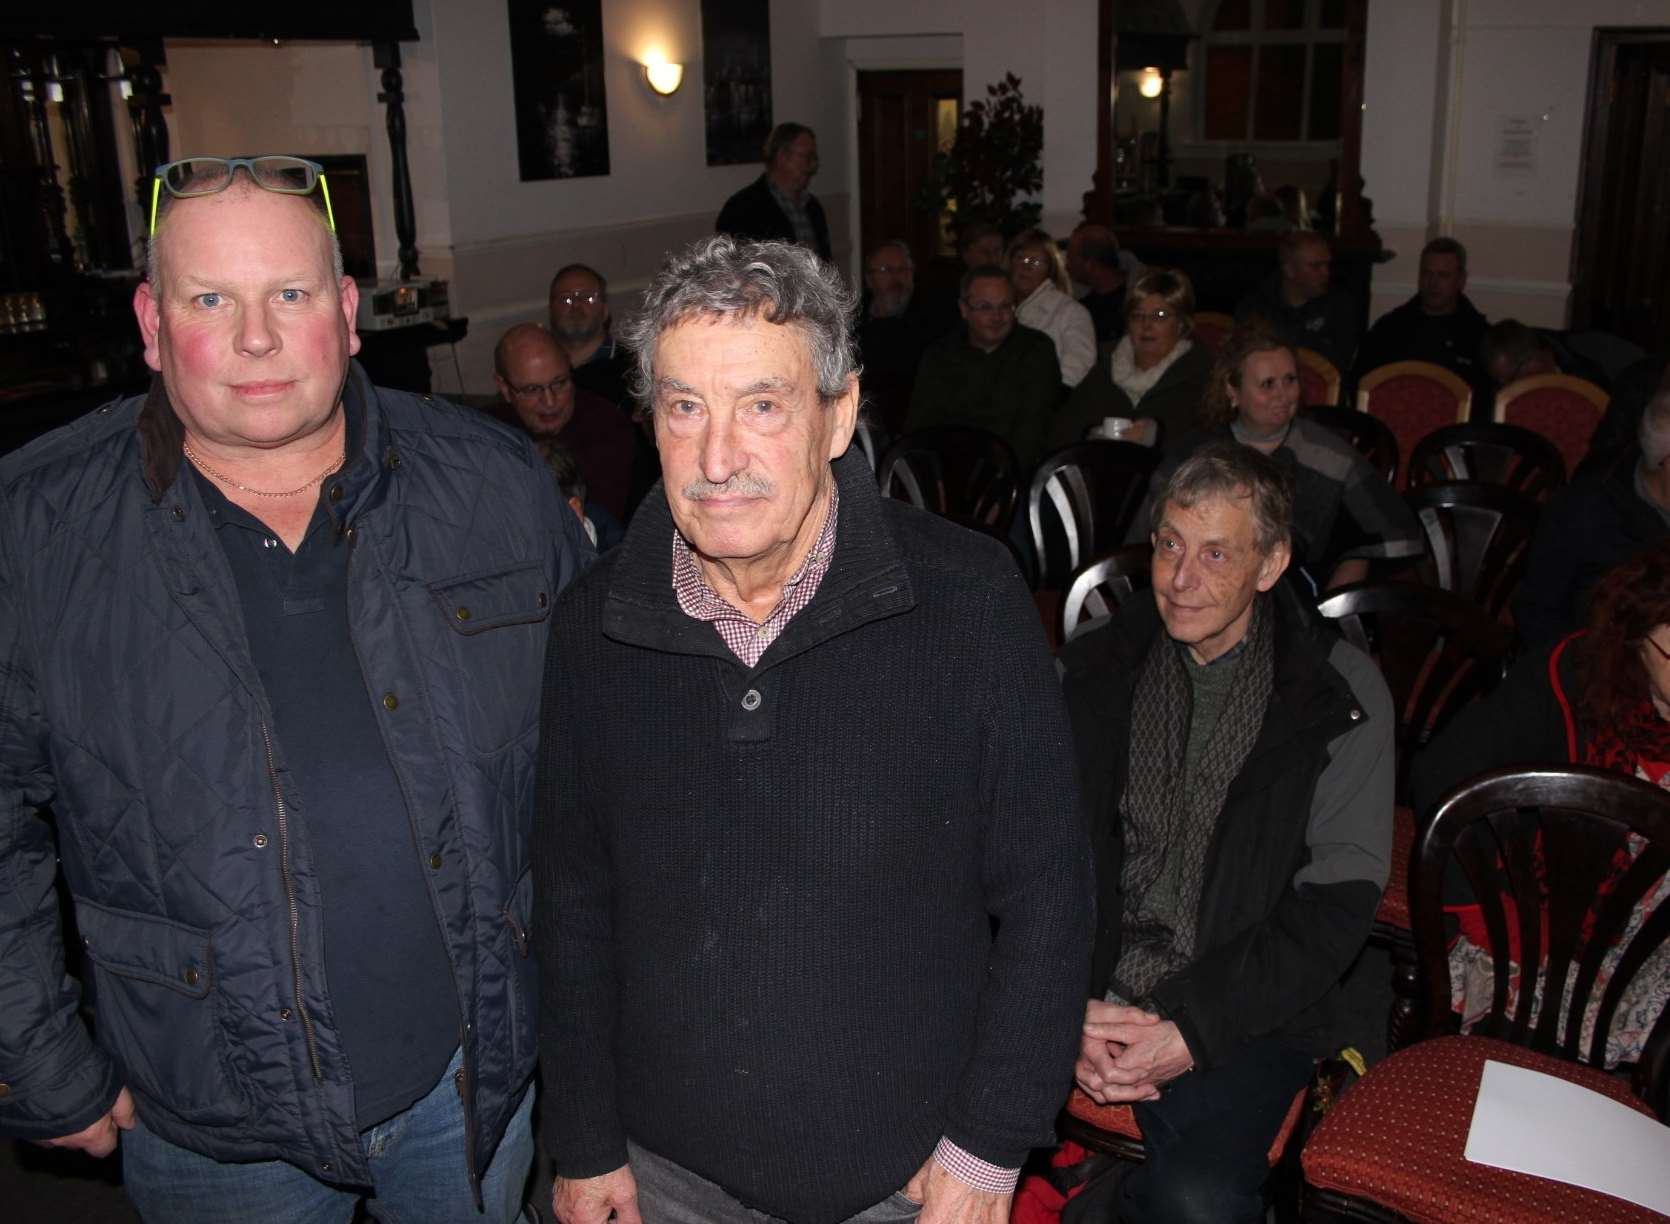 More than 30 joined David Wilcock, left, and Tim Bell at a meeting at the Royal Hotel to discuss plans for a new harbour for Sheerness